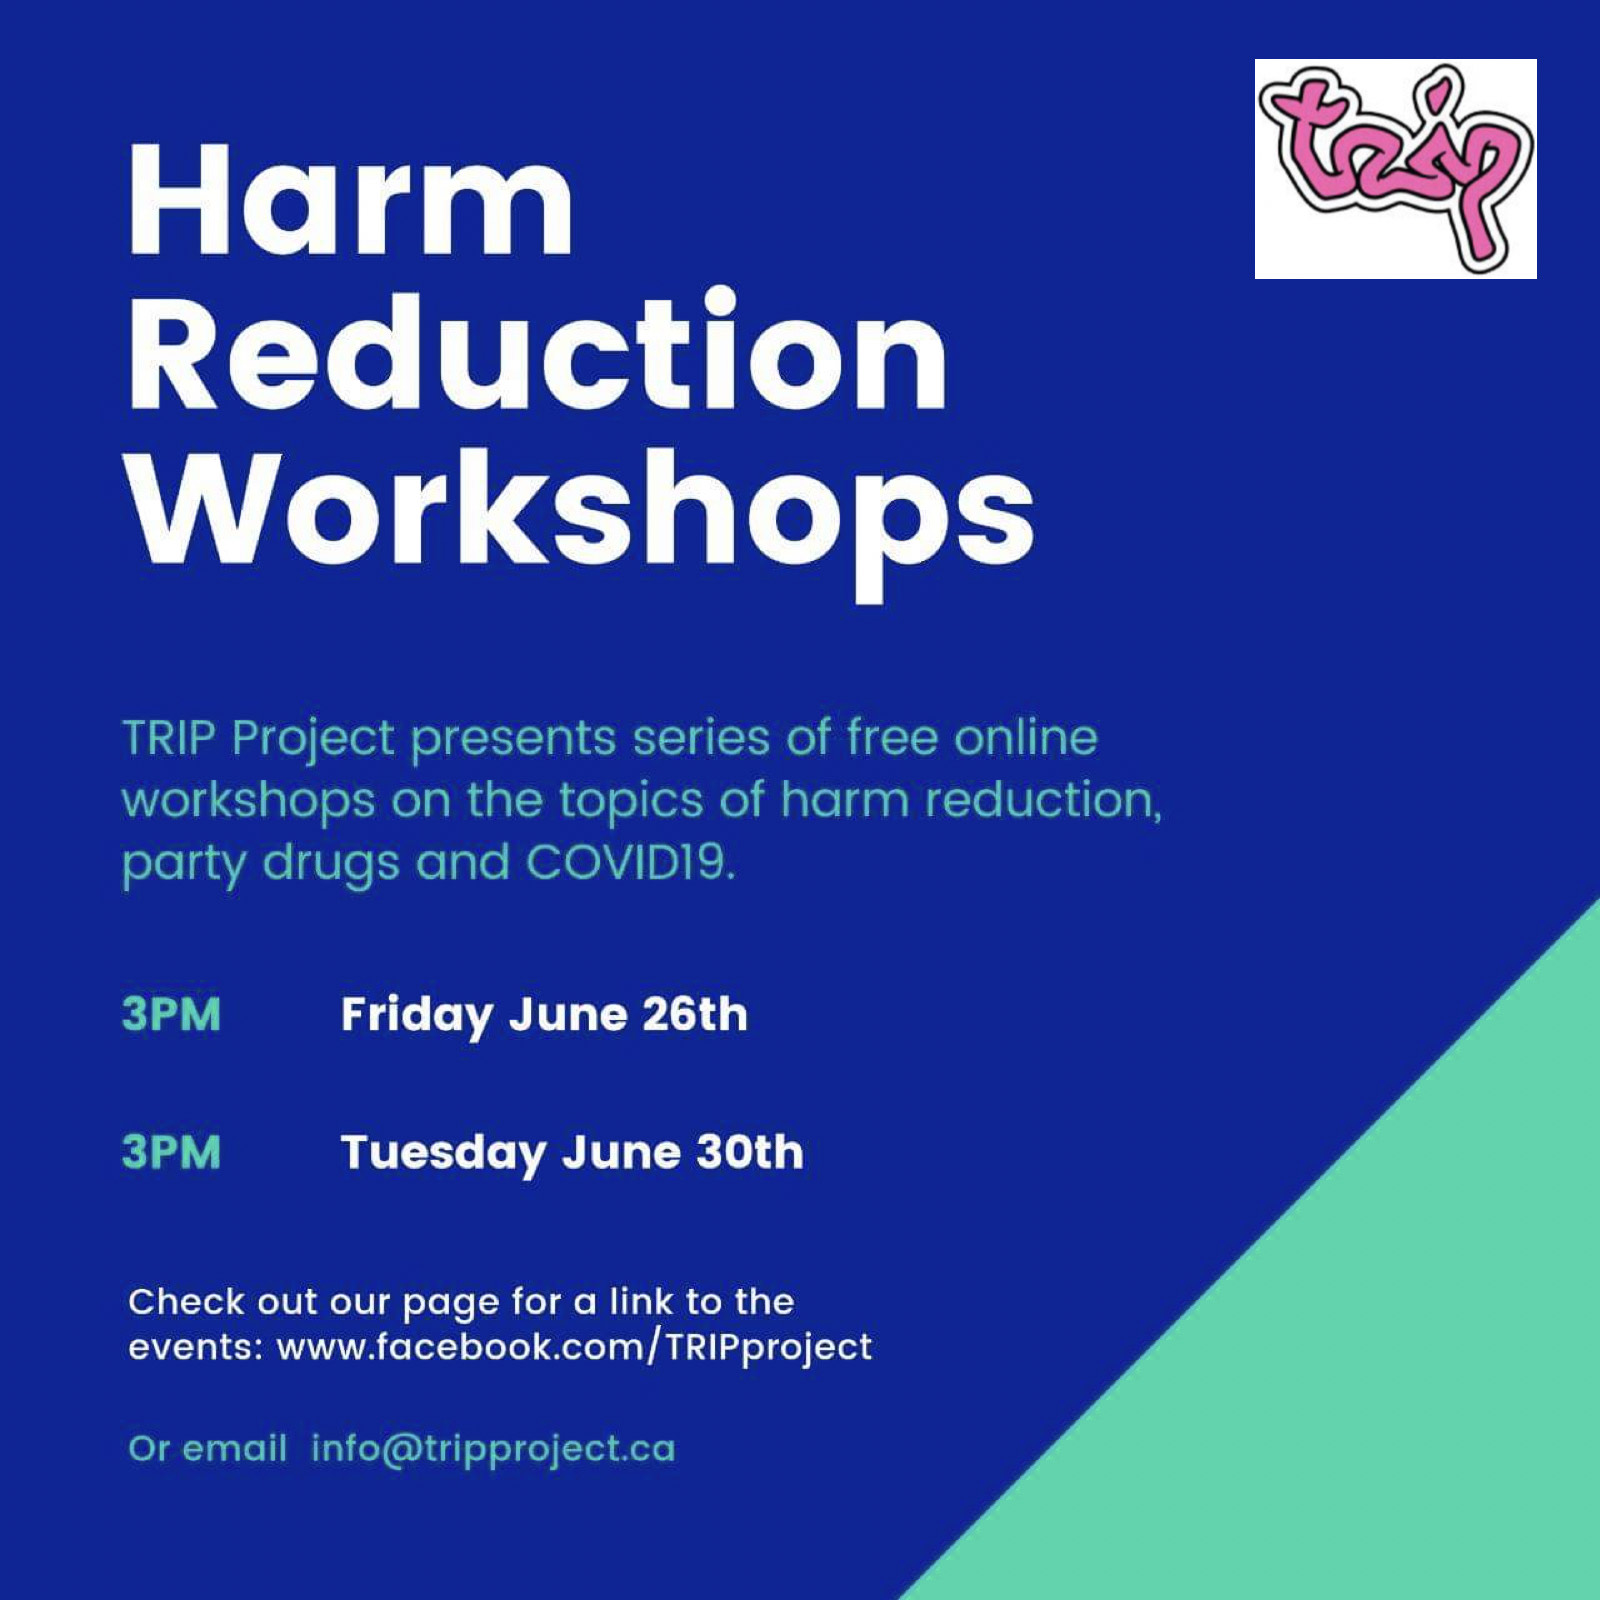 harm reduction workshop poster, same text as the post